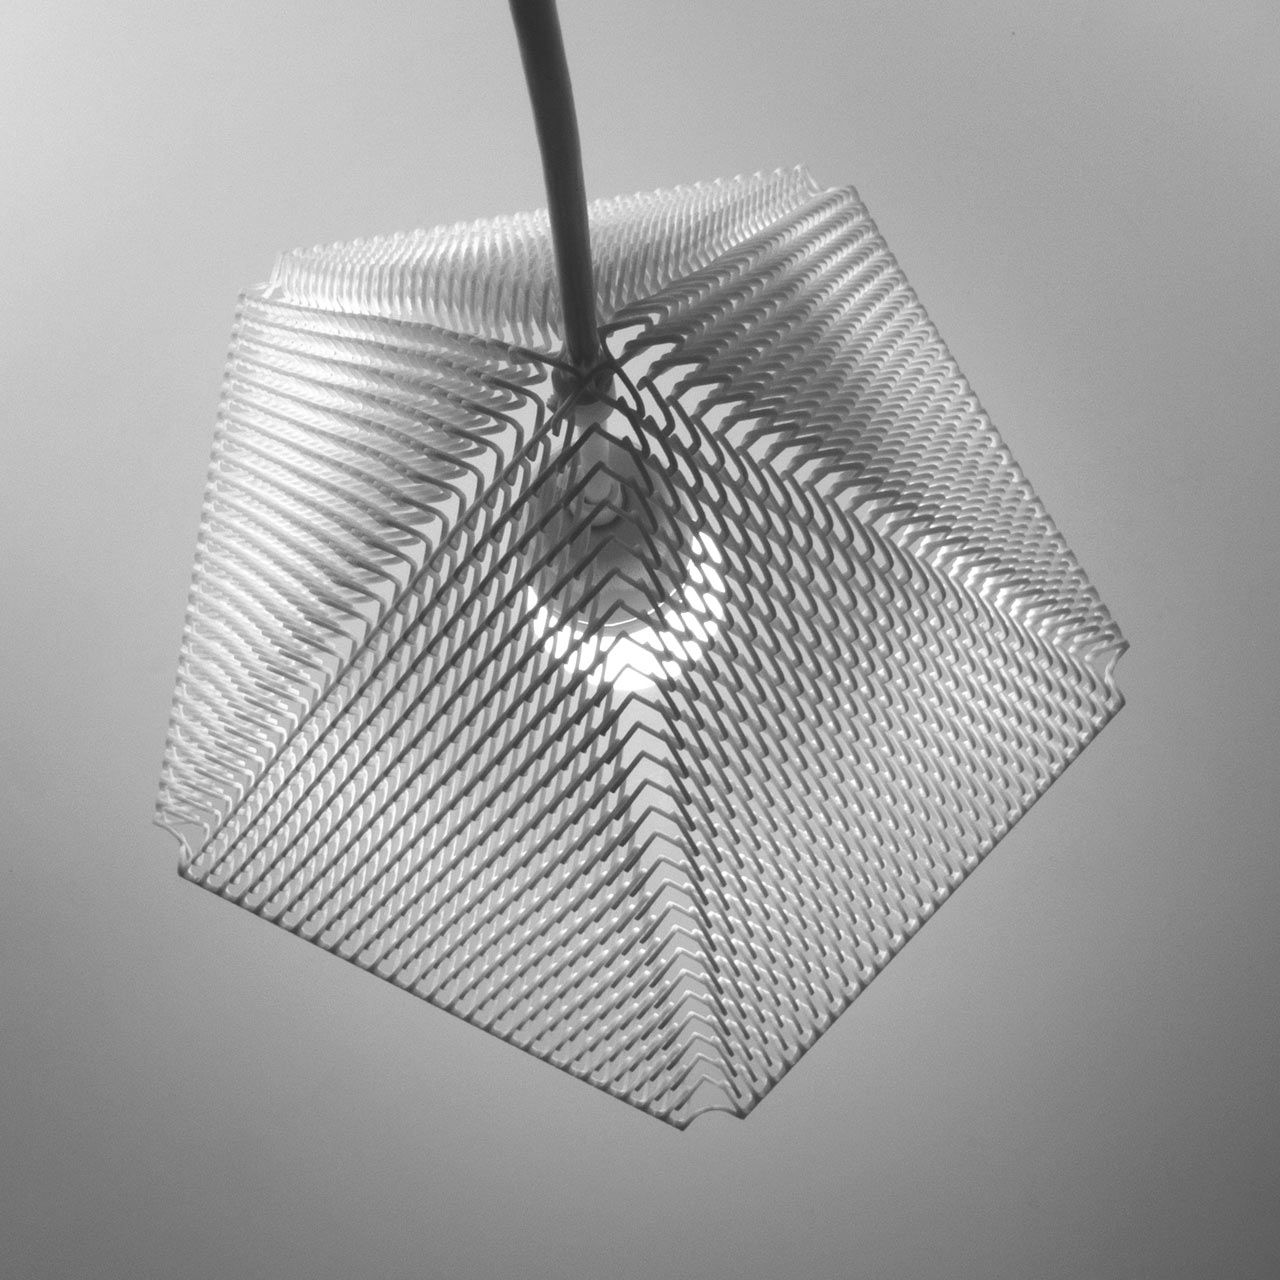 ZooM 3D Printed Lampshades By Michiel Cornelissen